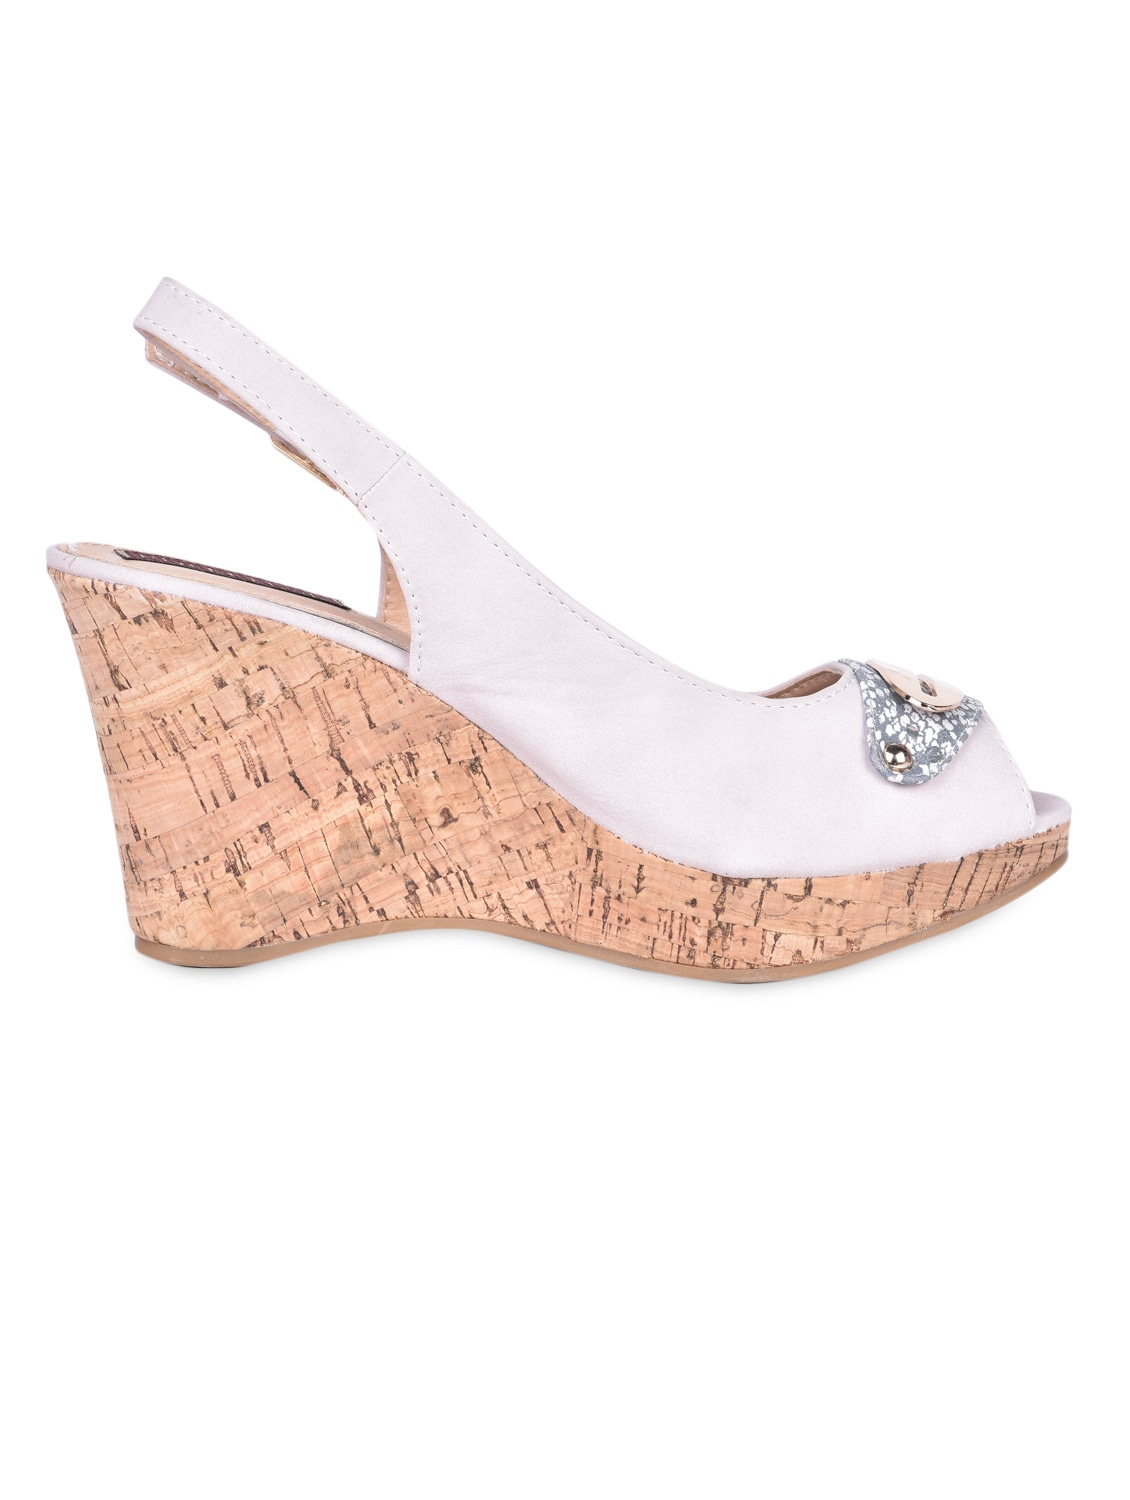 Metal Trim Sling Back White Peep Toe Wedges - Flat N Heels